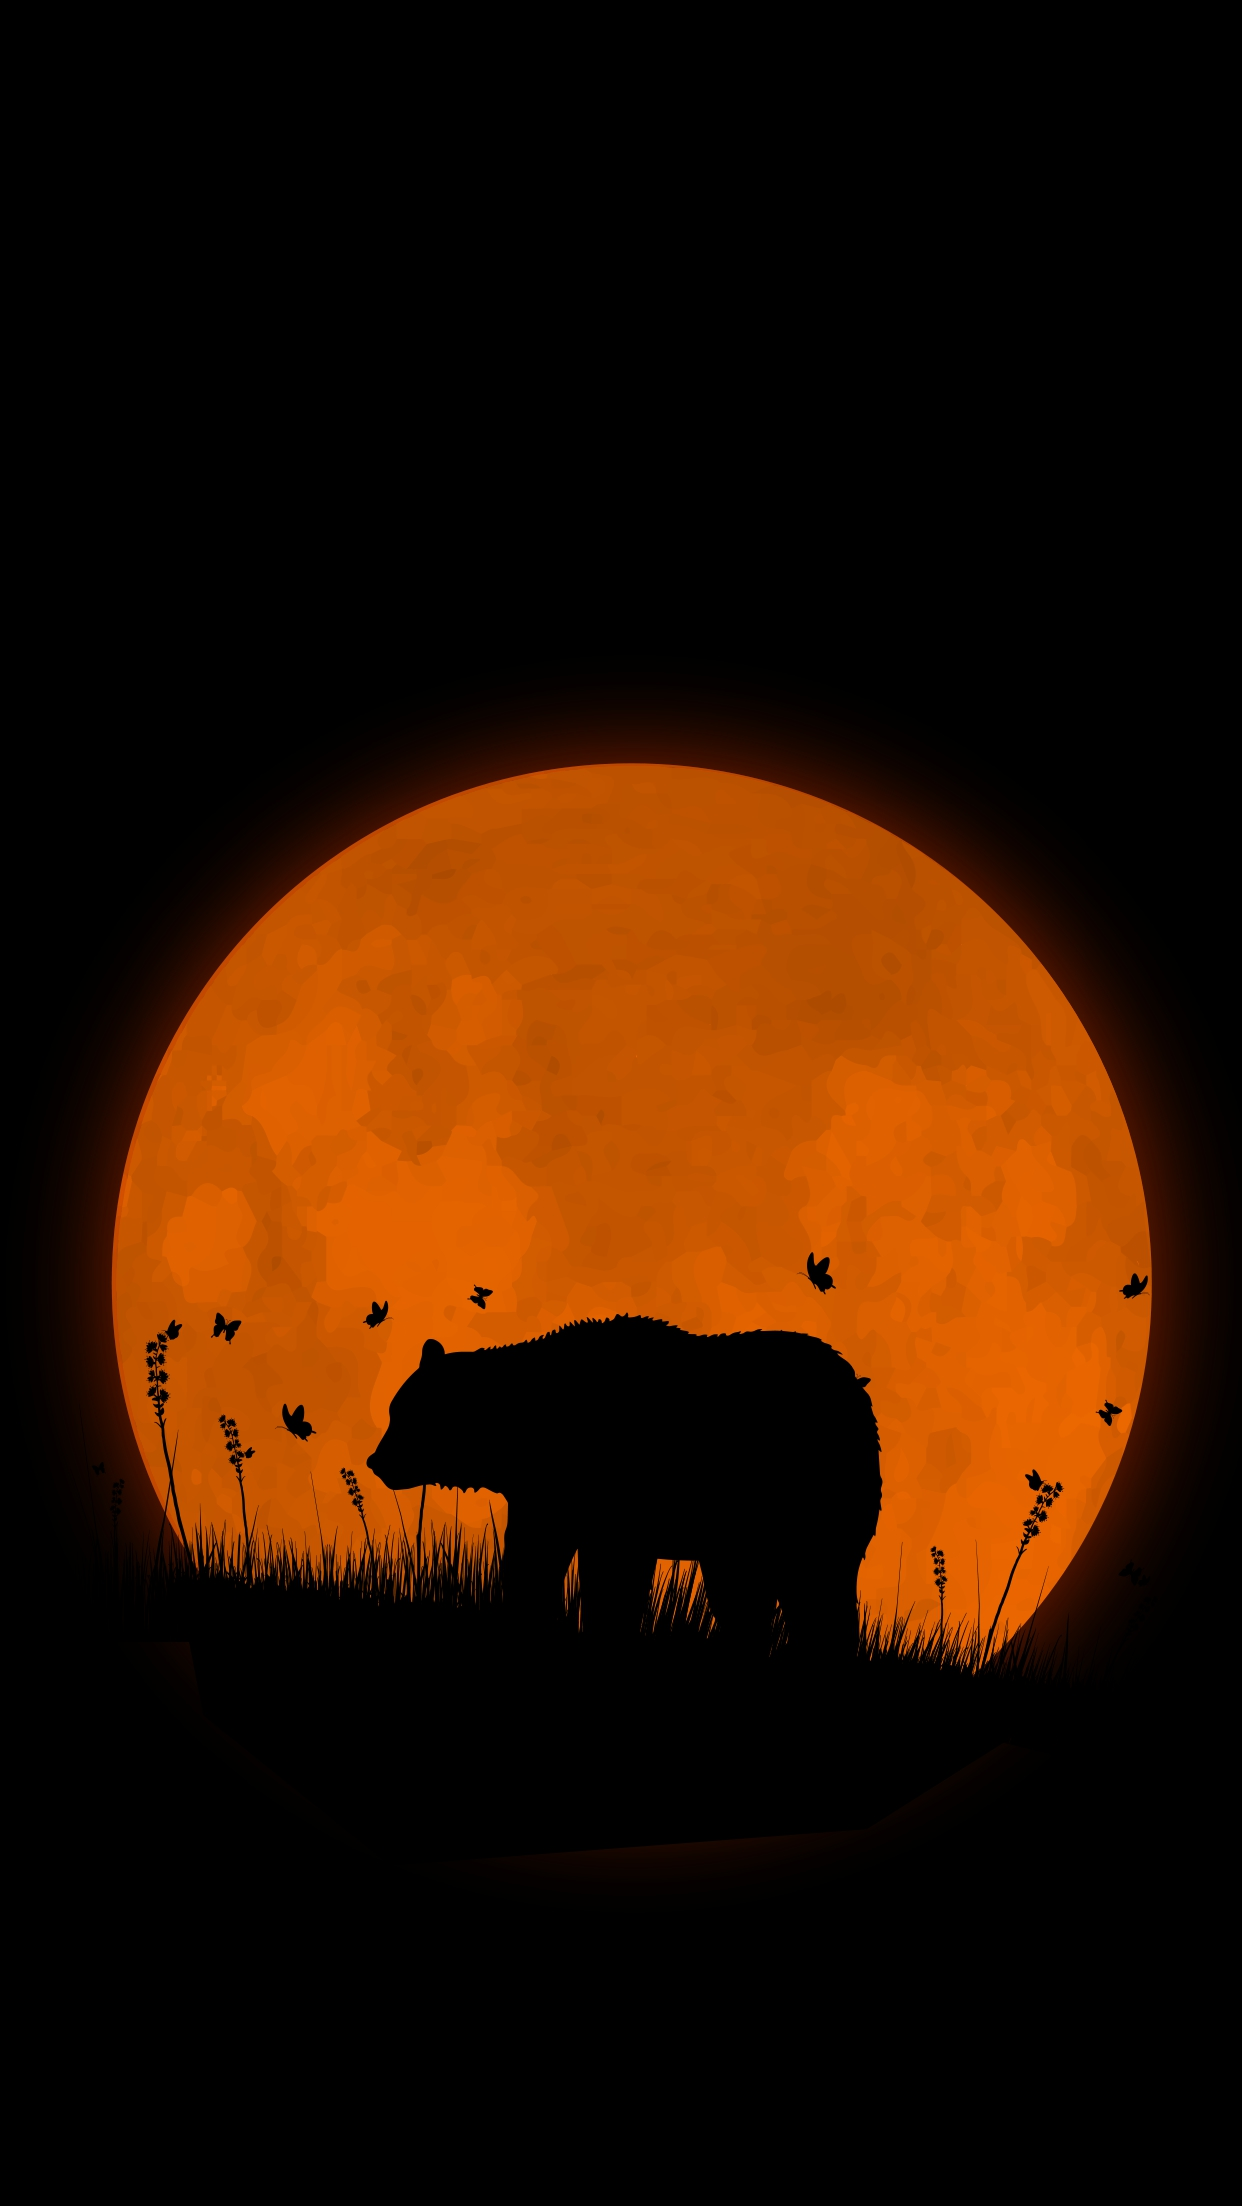 Wallpapers Wide With Quotes Grizzly Bear Super Moon Iphone Wallpaper Iphone Wallpapers